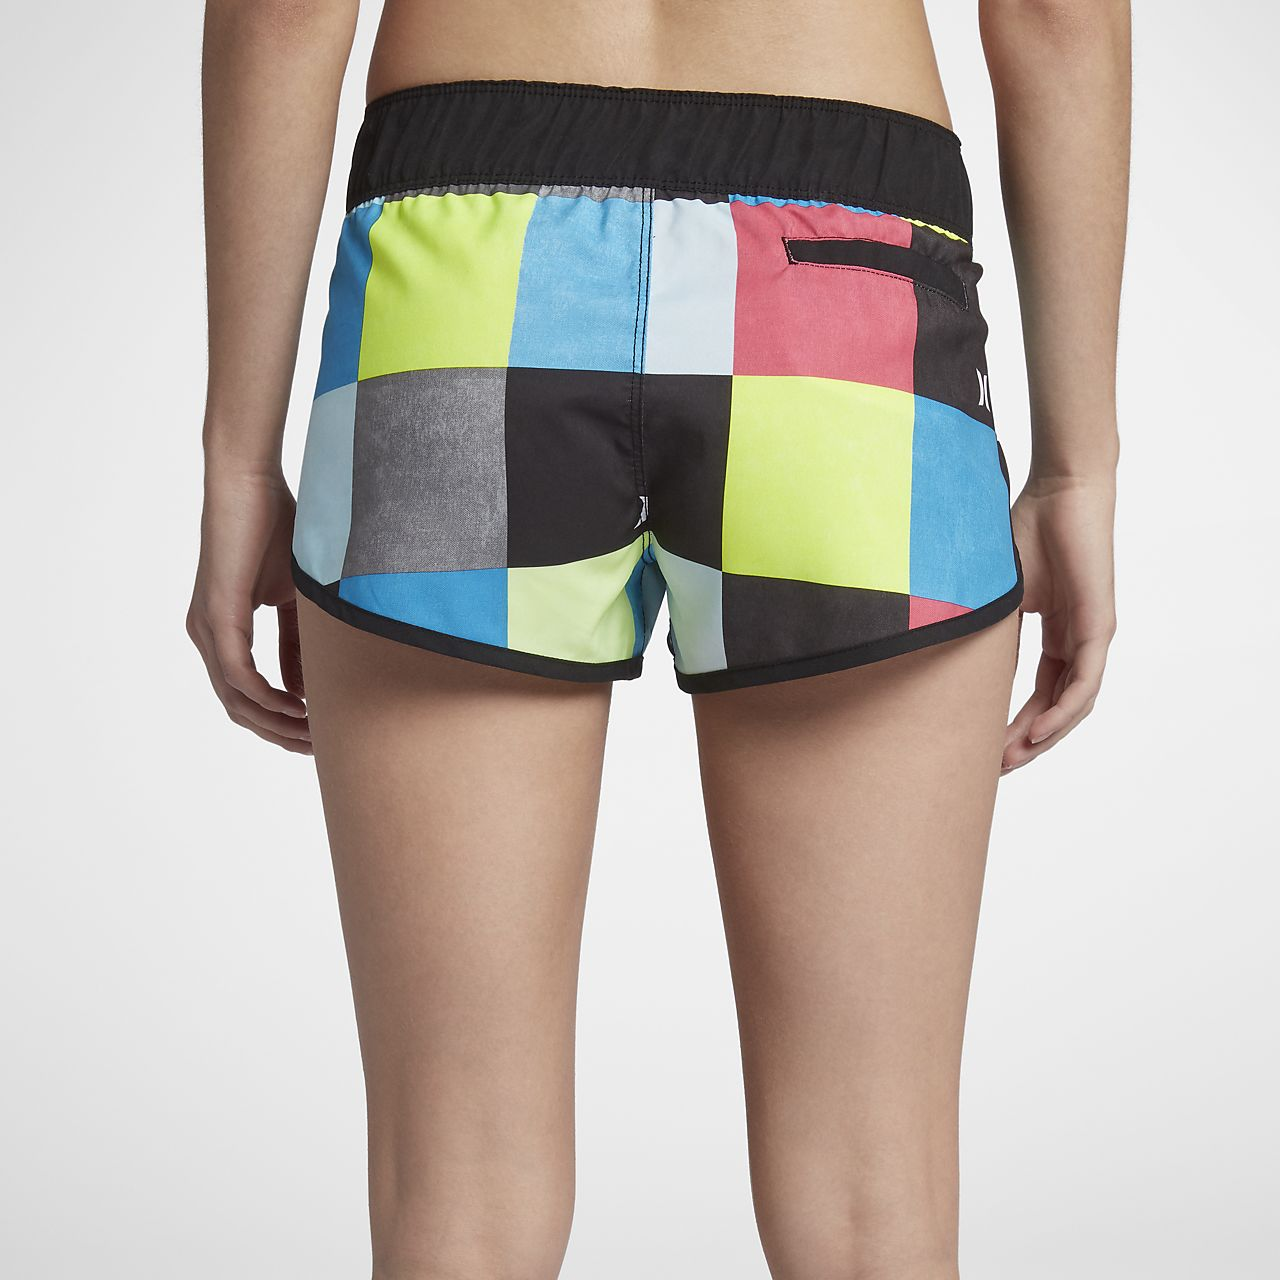 SWIMWEAR - Beach shorts and trousers Hurley Best Place Cheap Online Latest Collections Online Cheap Release Dates 8zO8GOLT7